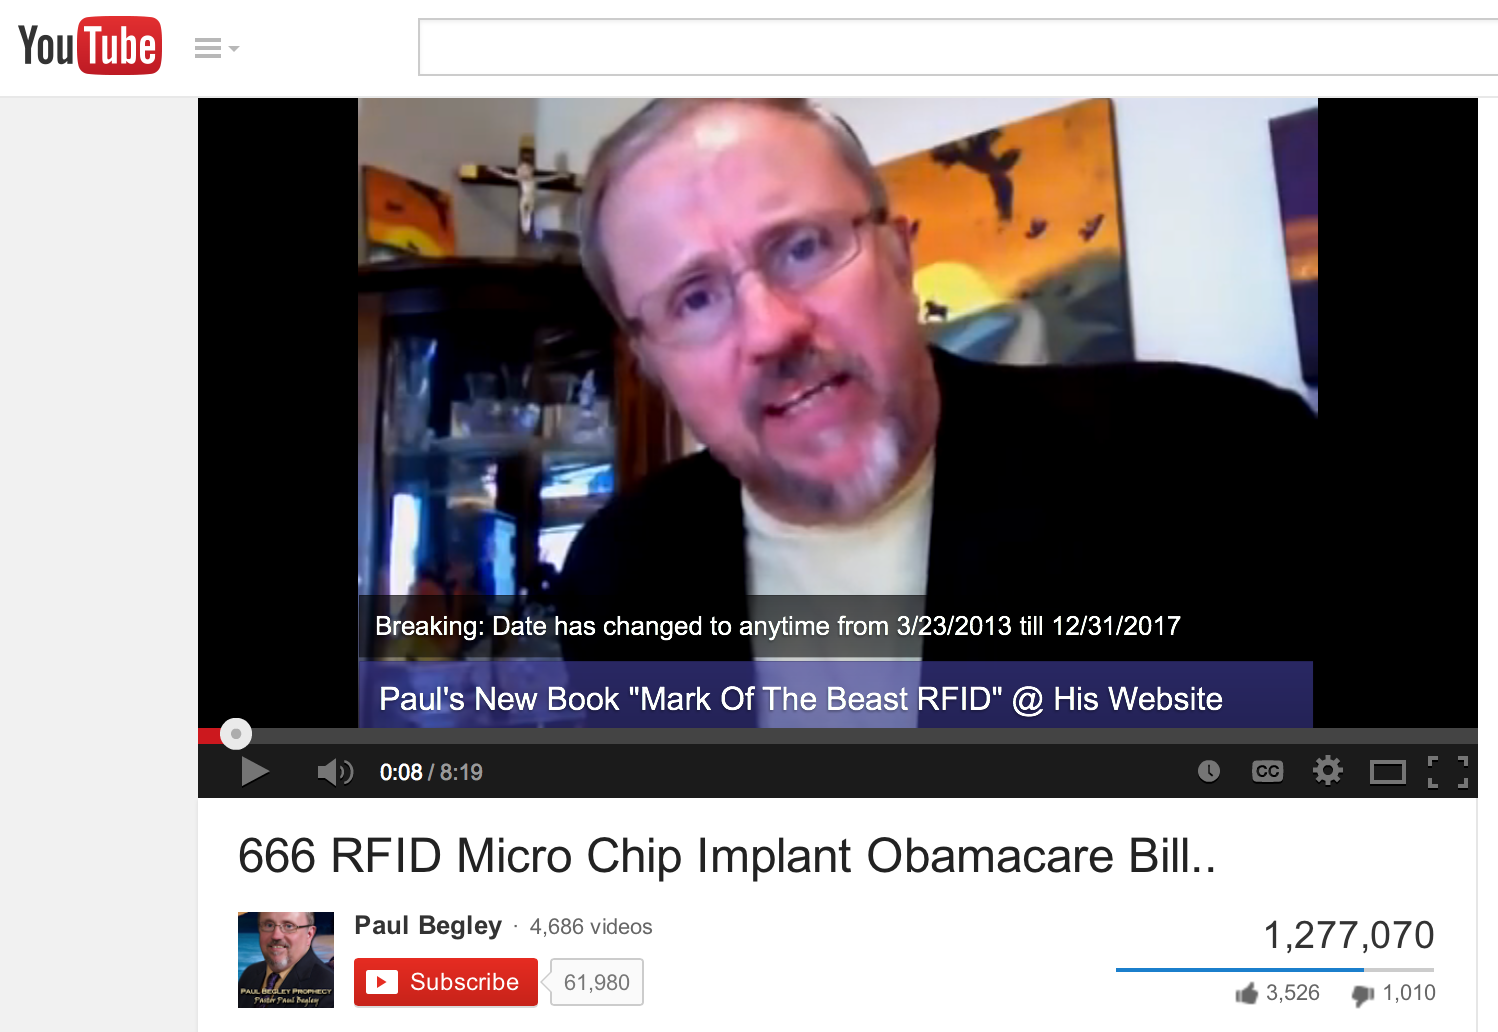 Obamacare and rfid chip